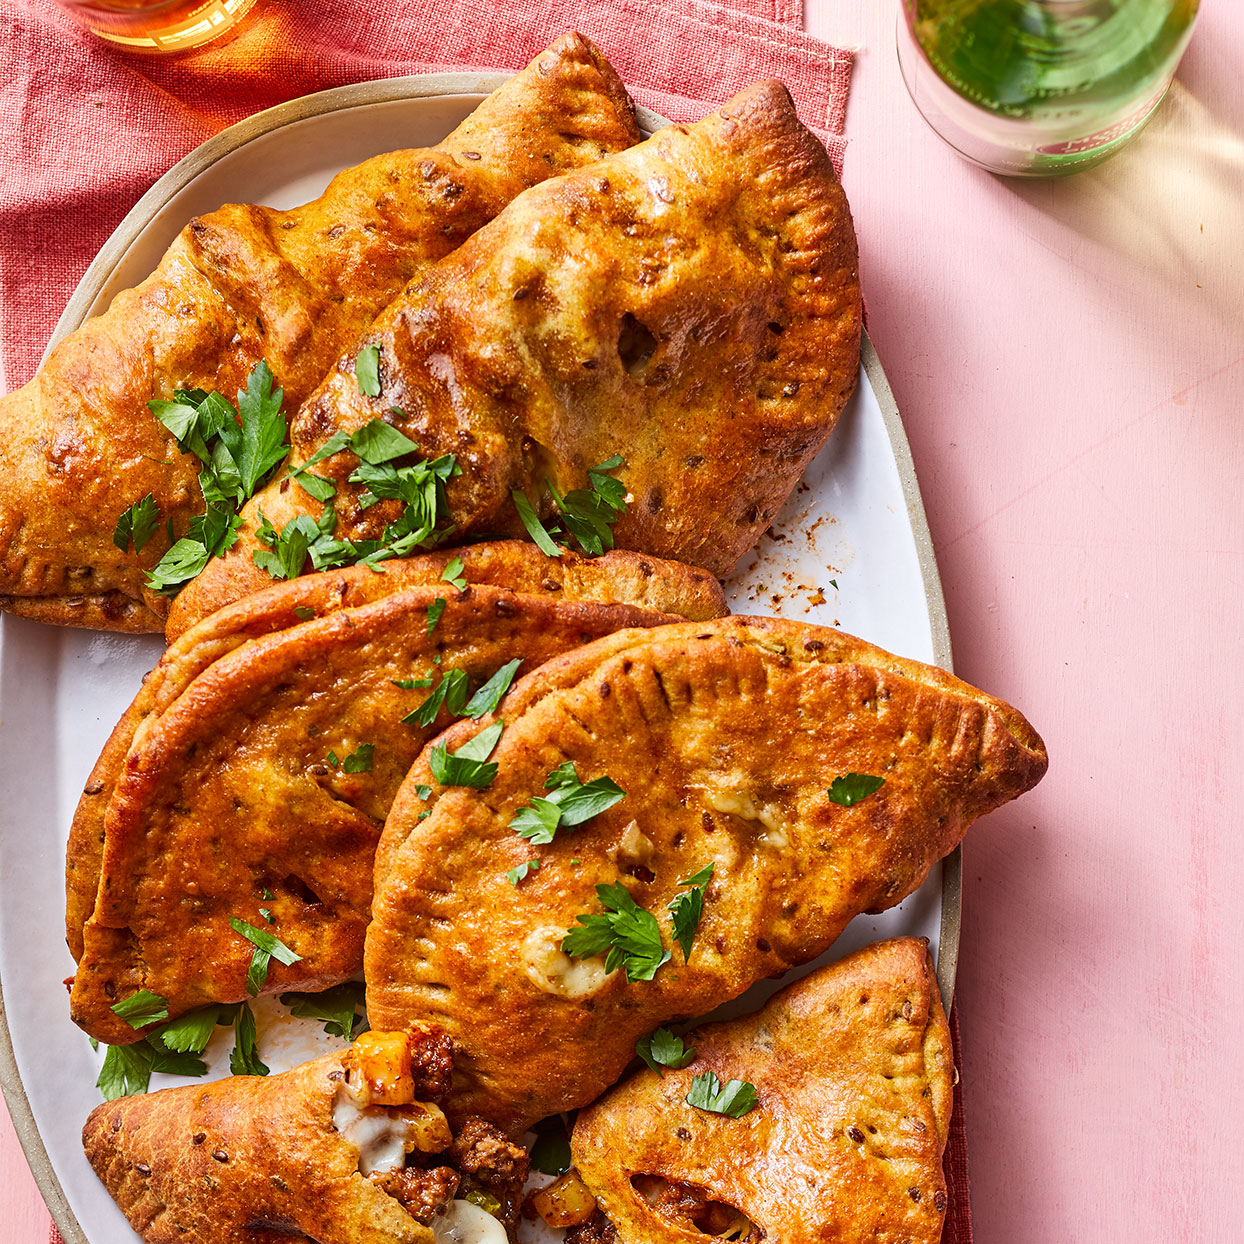 These samosa-inspired savory hand pies call for curry powder and garam masala, spice blends that allow you to add the power of 10 spices in just two ingredients. Source: EatingWell Magazine, April 2020